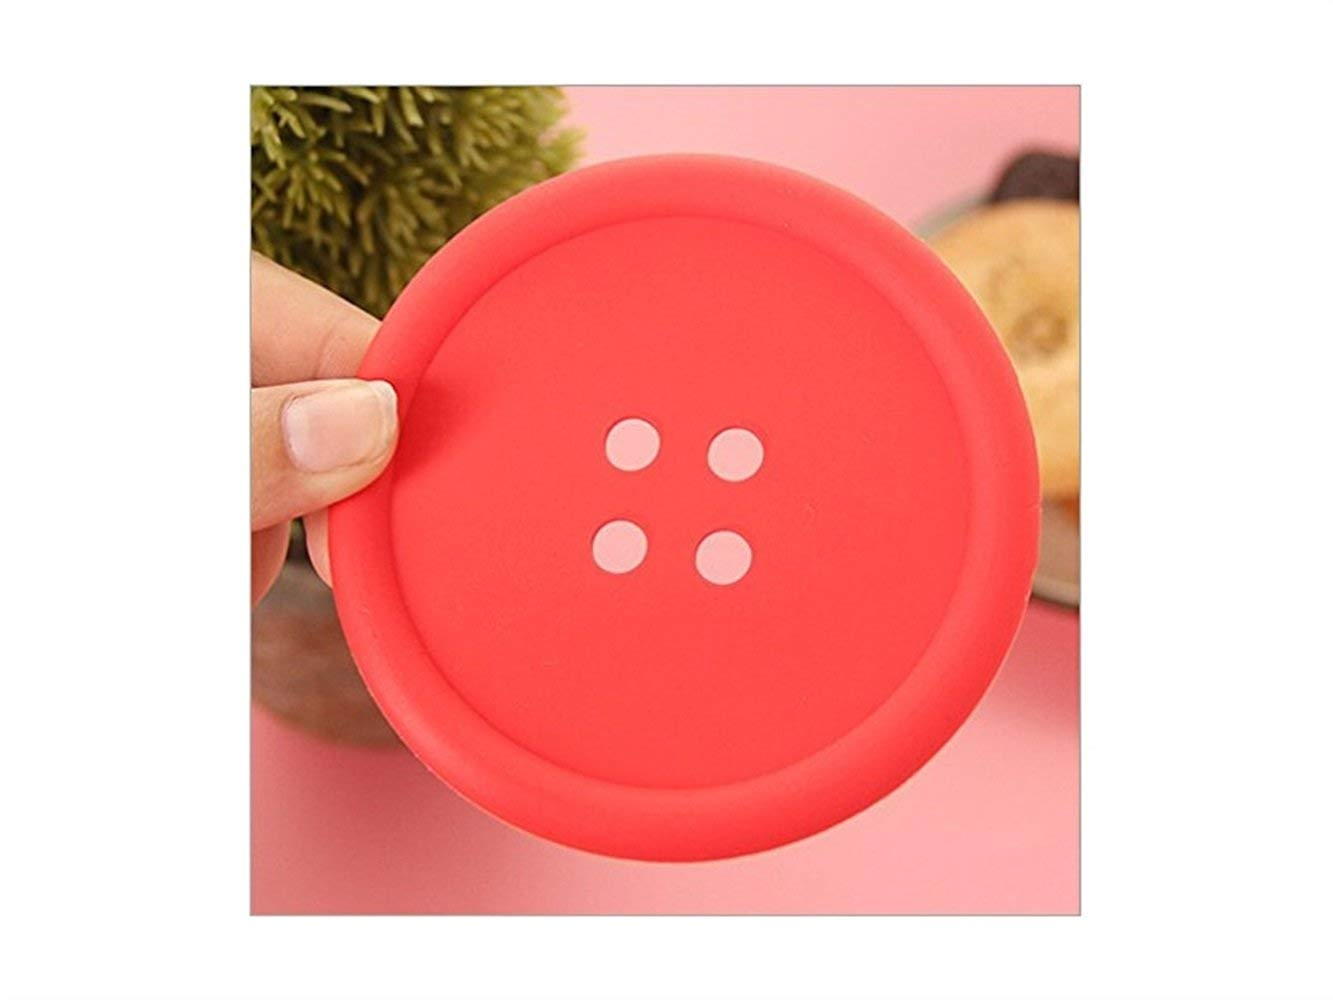 Yuchoi Perfectly Shaped Creative Cup Cushion Holder Cute Colorful Round Button Shaped Non-slip Insulated Silicone Cup Mats (Red)